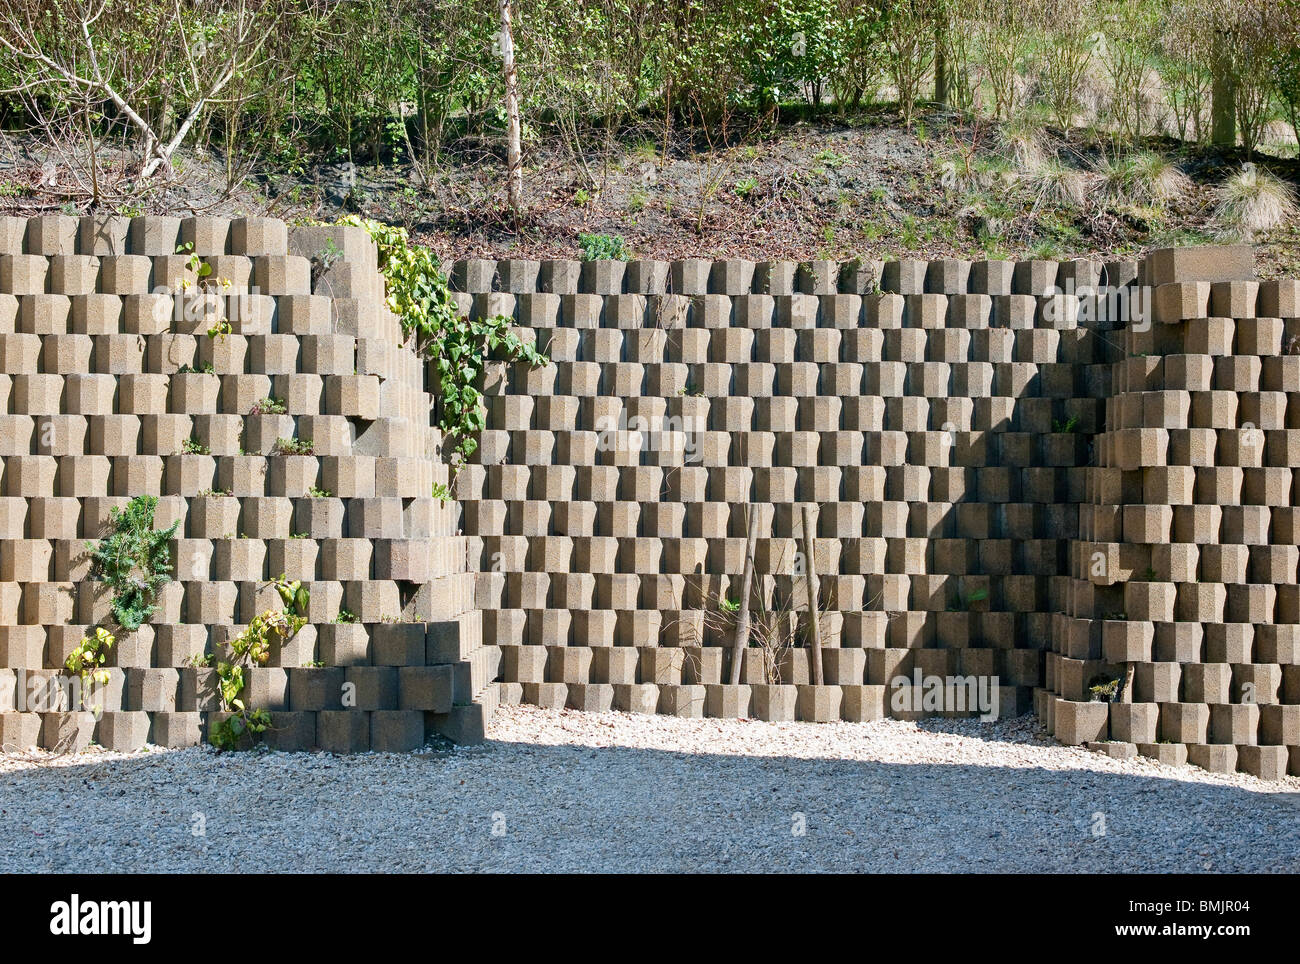 Neat Concrete Block Retaining Wall At Bottom Of Hill Side Garden